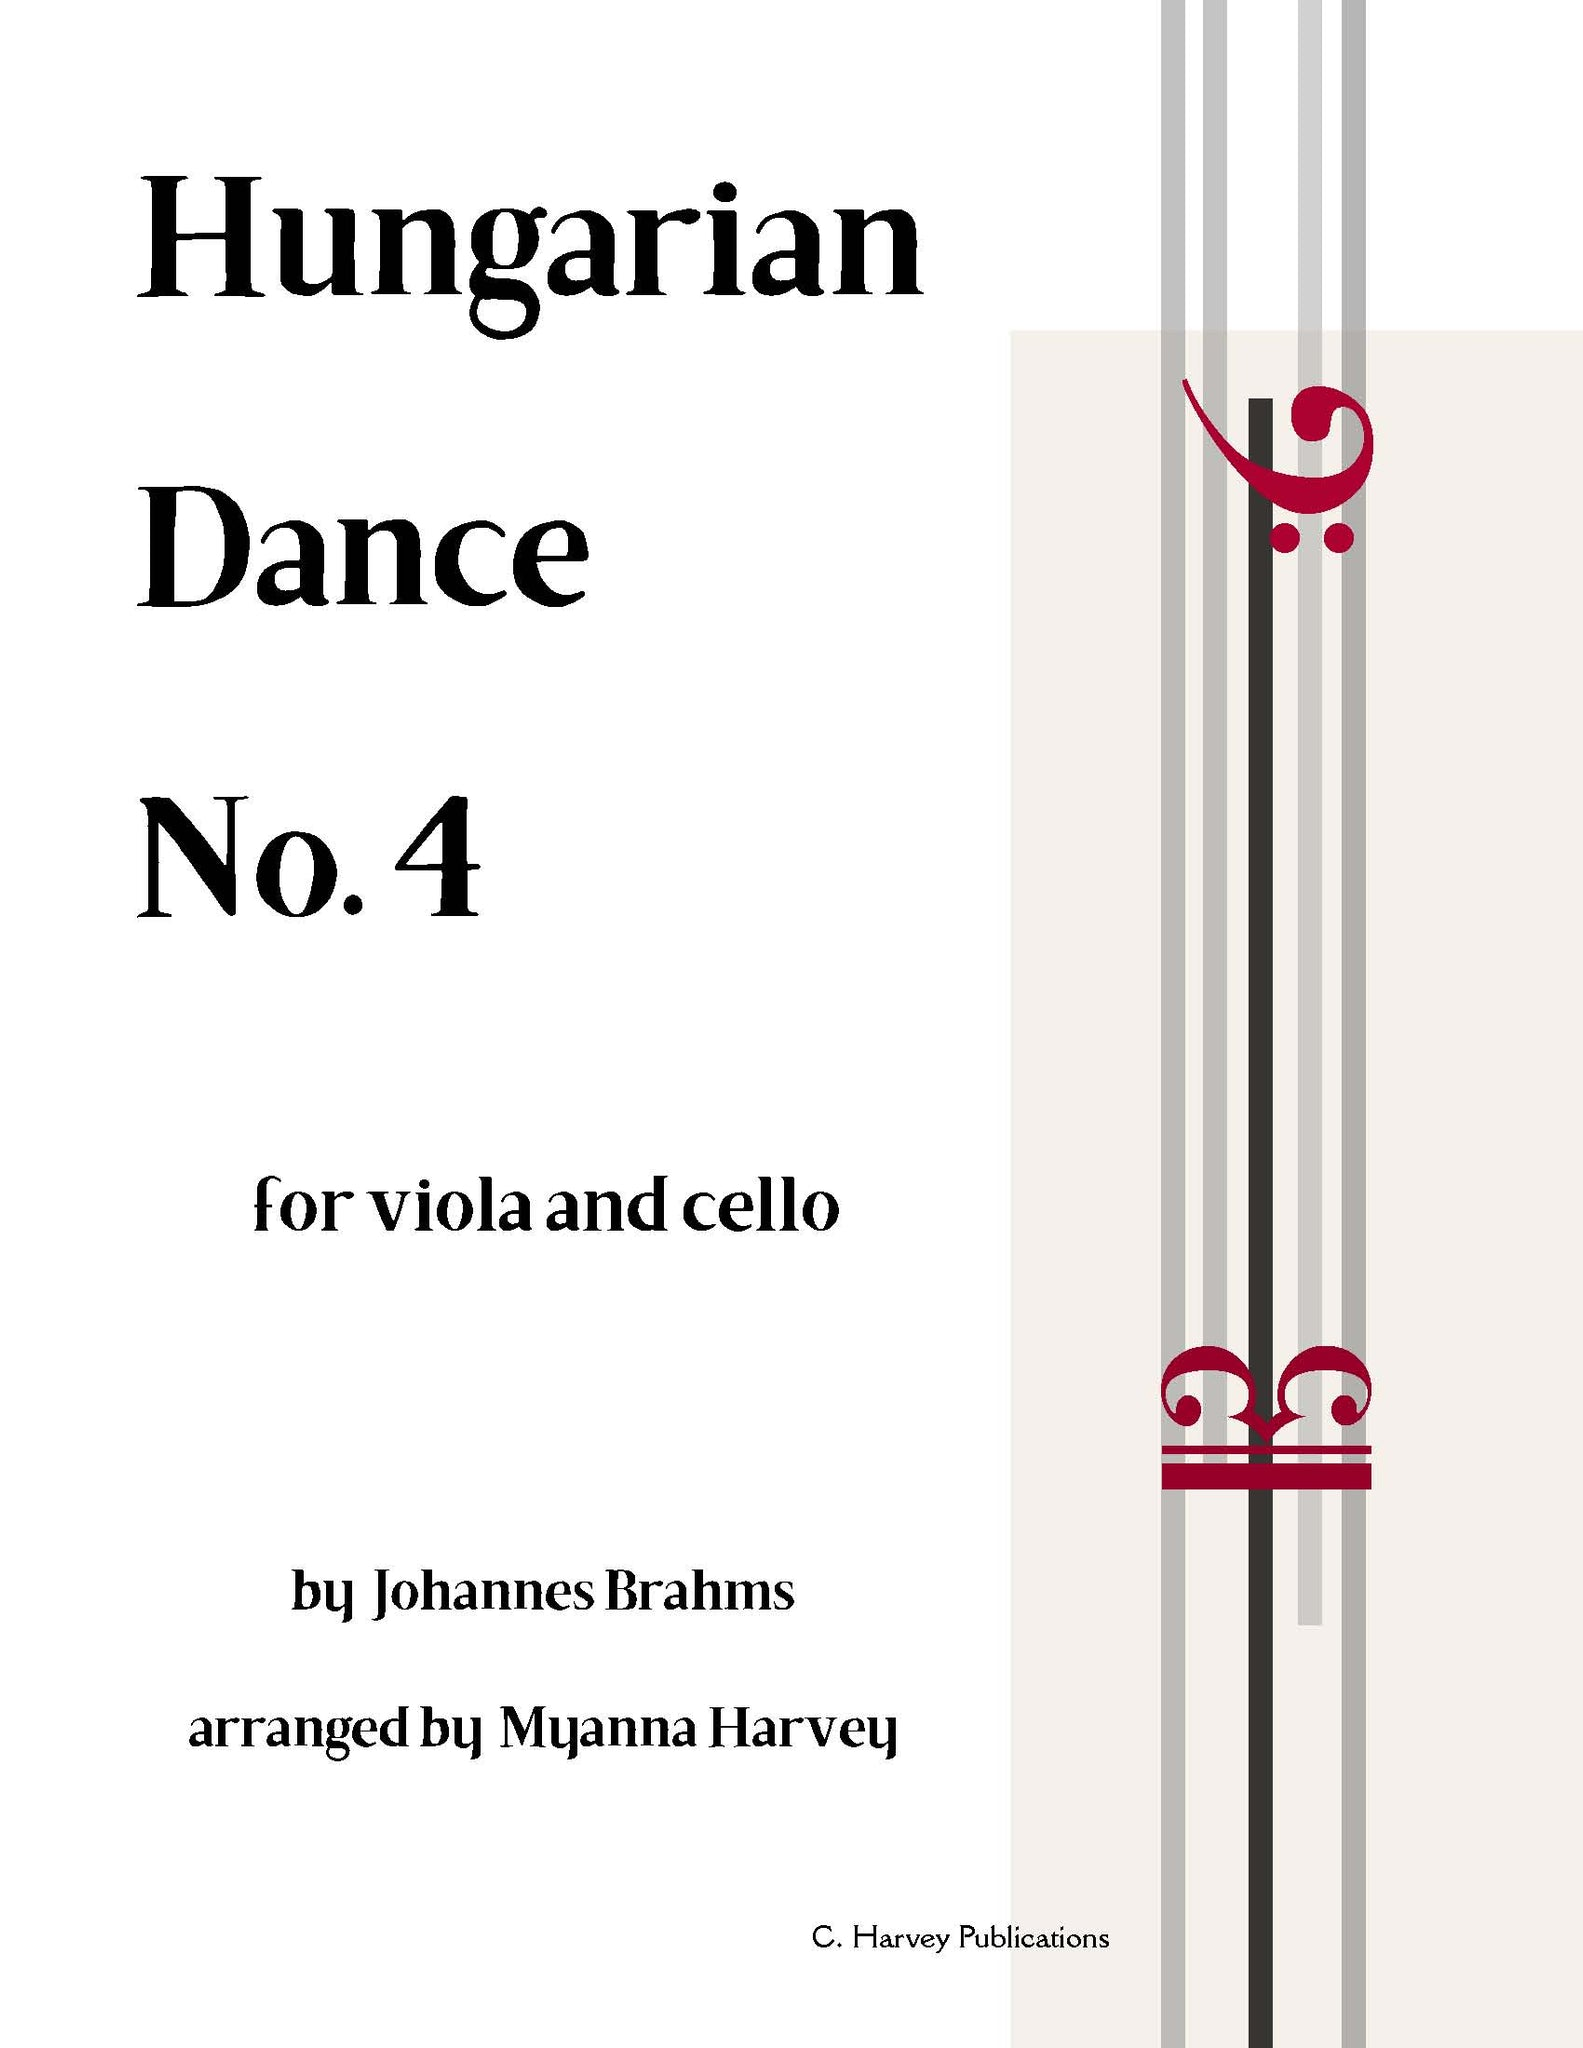 Hungarian Dance No. 4, by Johannes Brahms, for String Duo - PDF Download